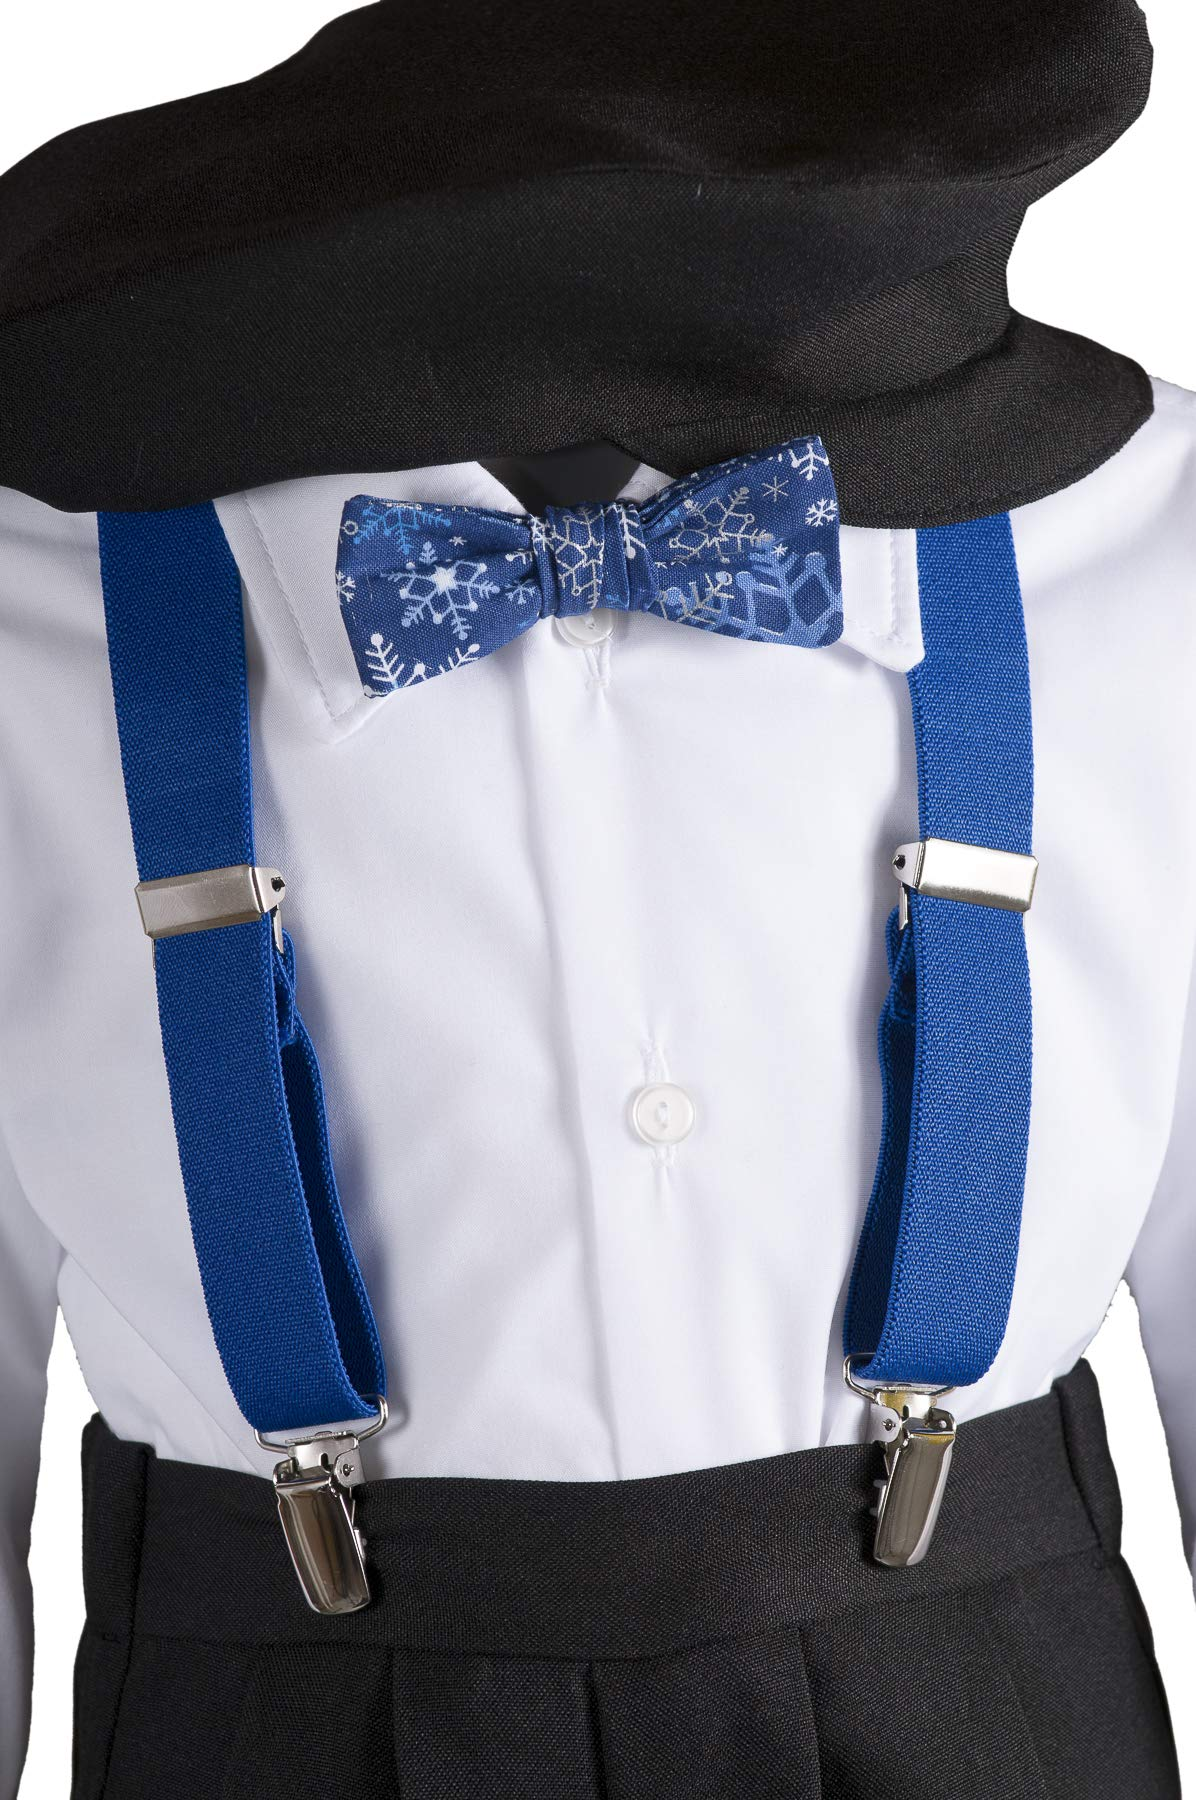 Boys Black Knickers Pageboy Cap with Royal Blue Suspenders & Snowflake Bow Tie (6B) by Tuxgear (Image #3)